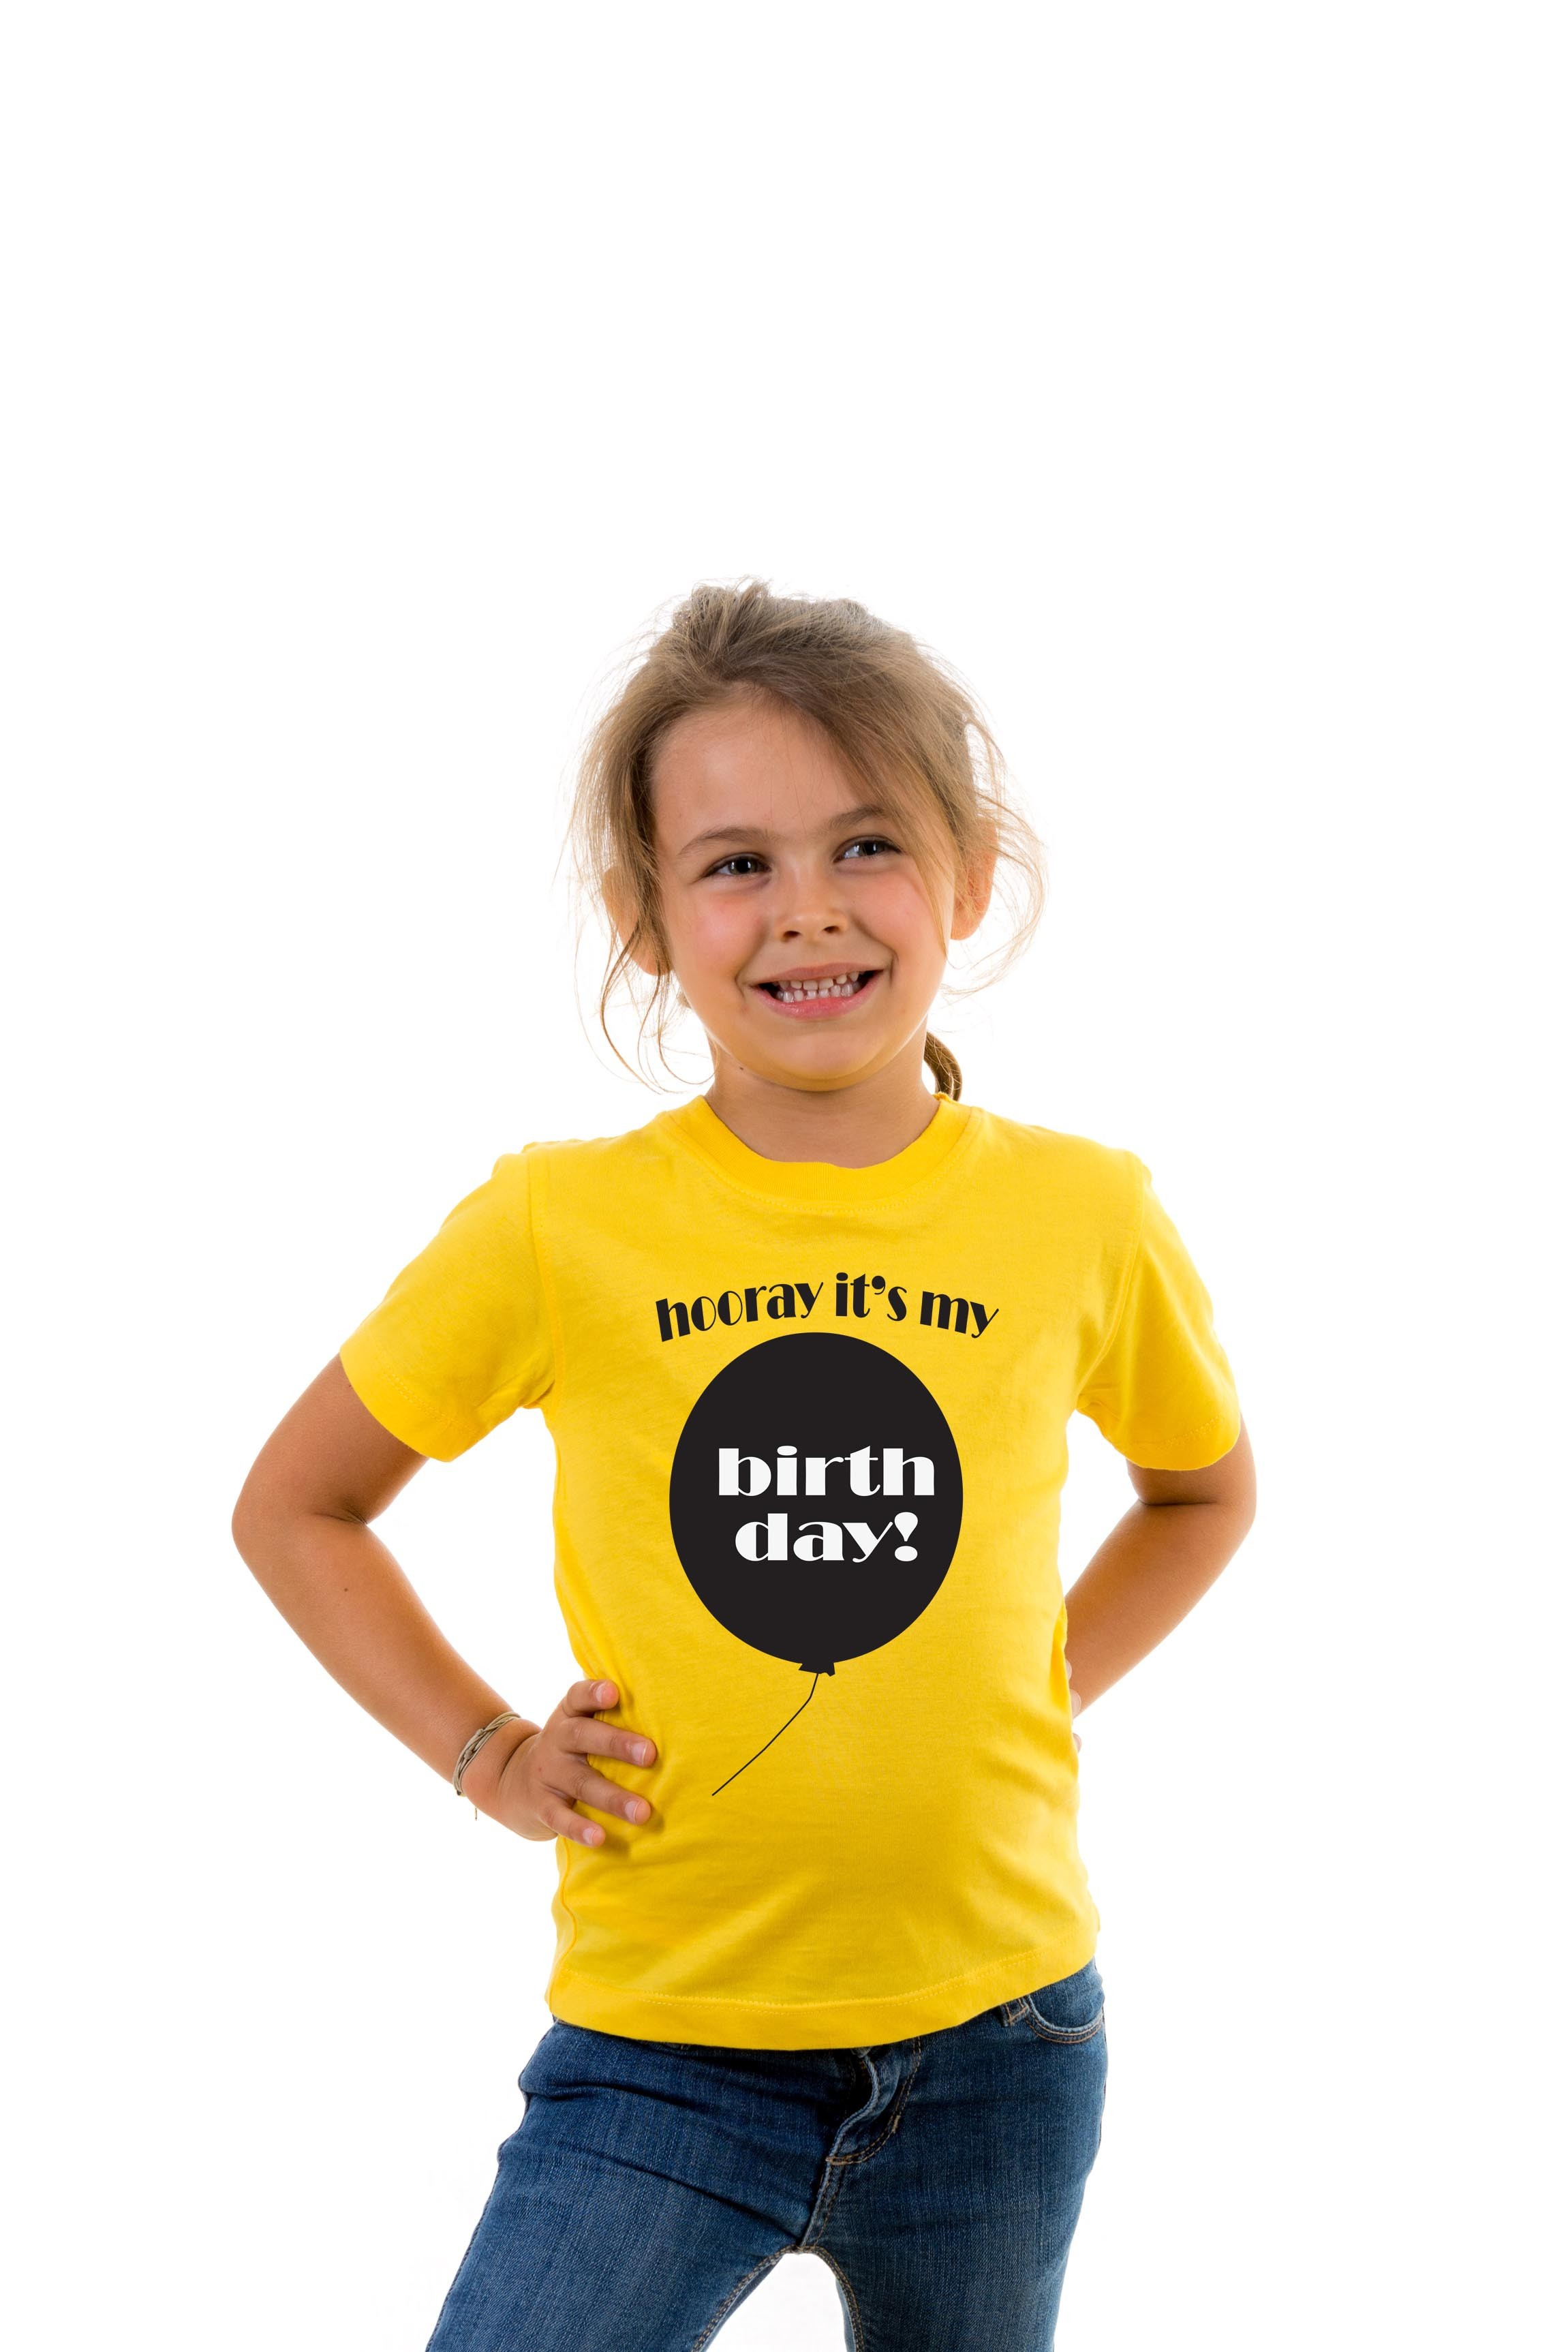 T Shirt Kid Hooray It S My Birthday Birthday Celebrations